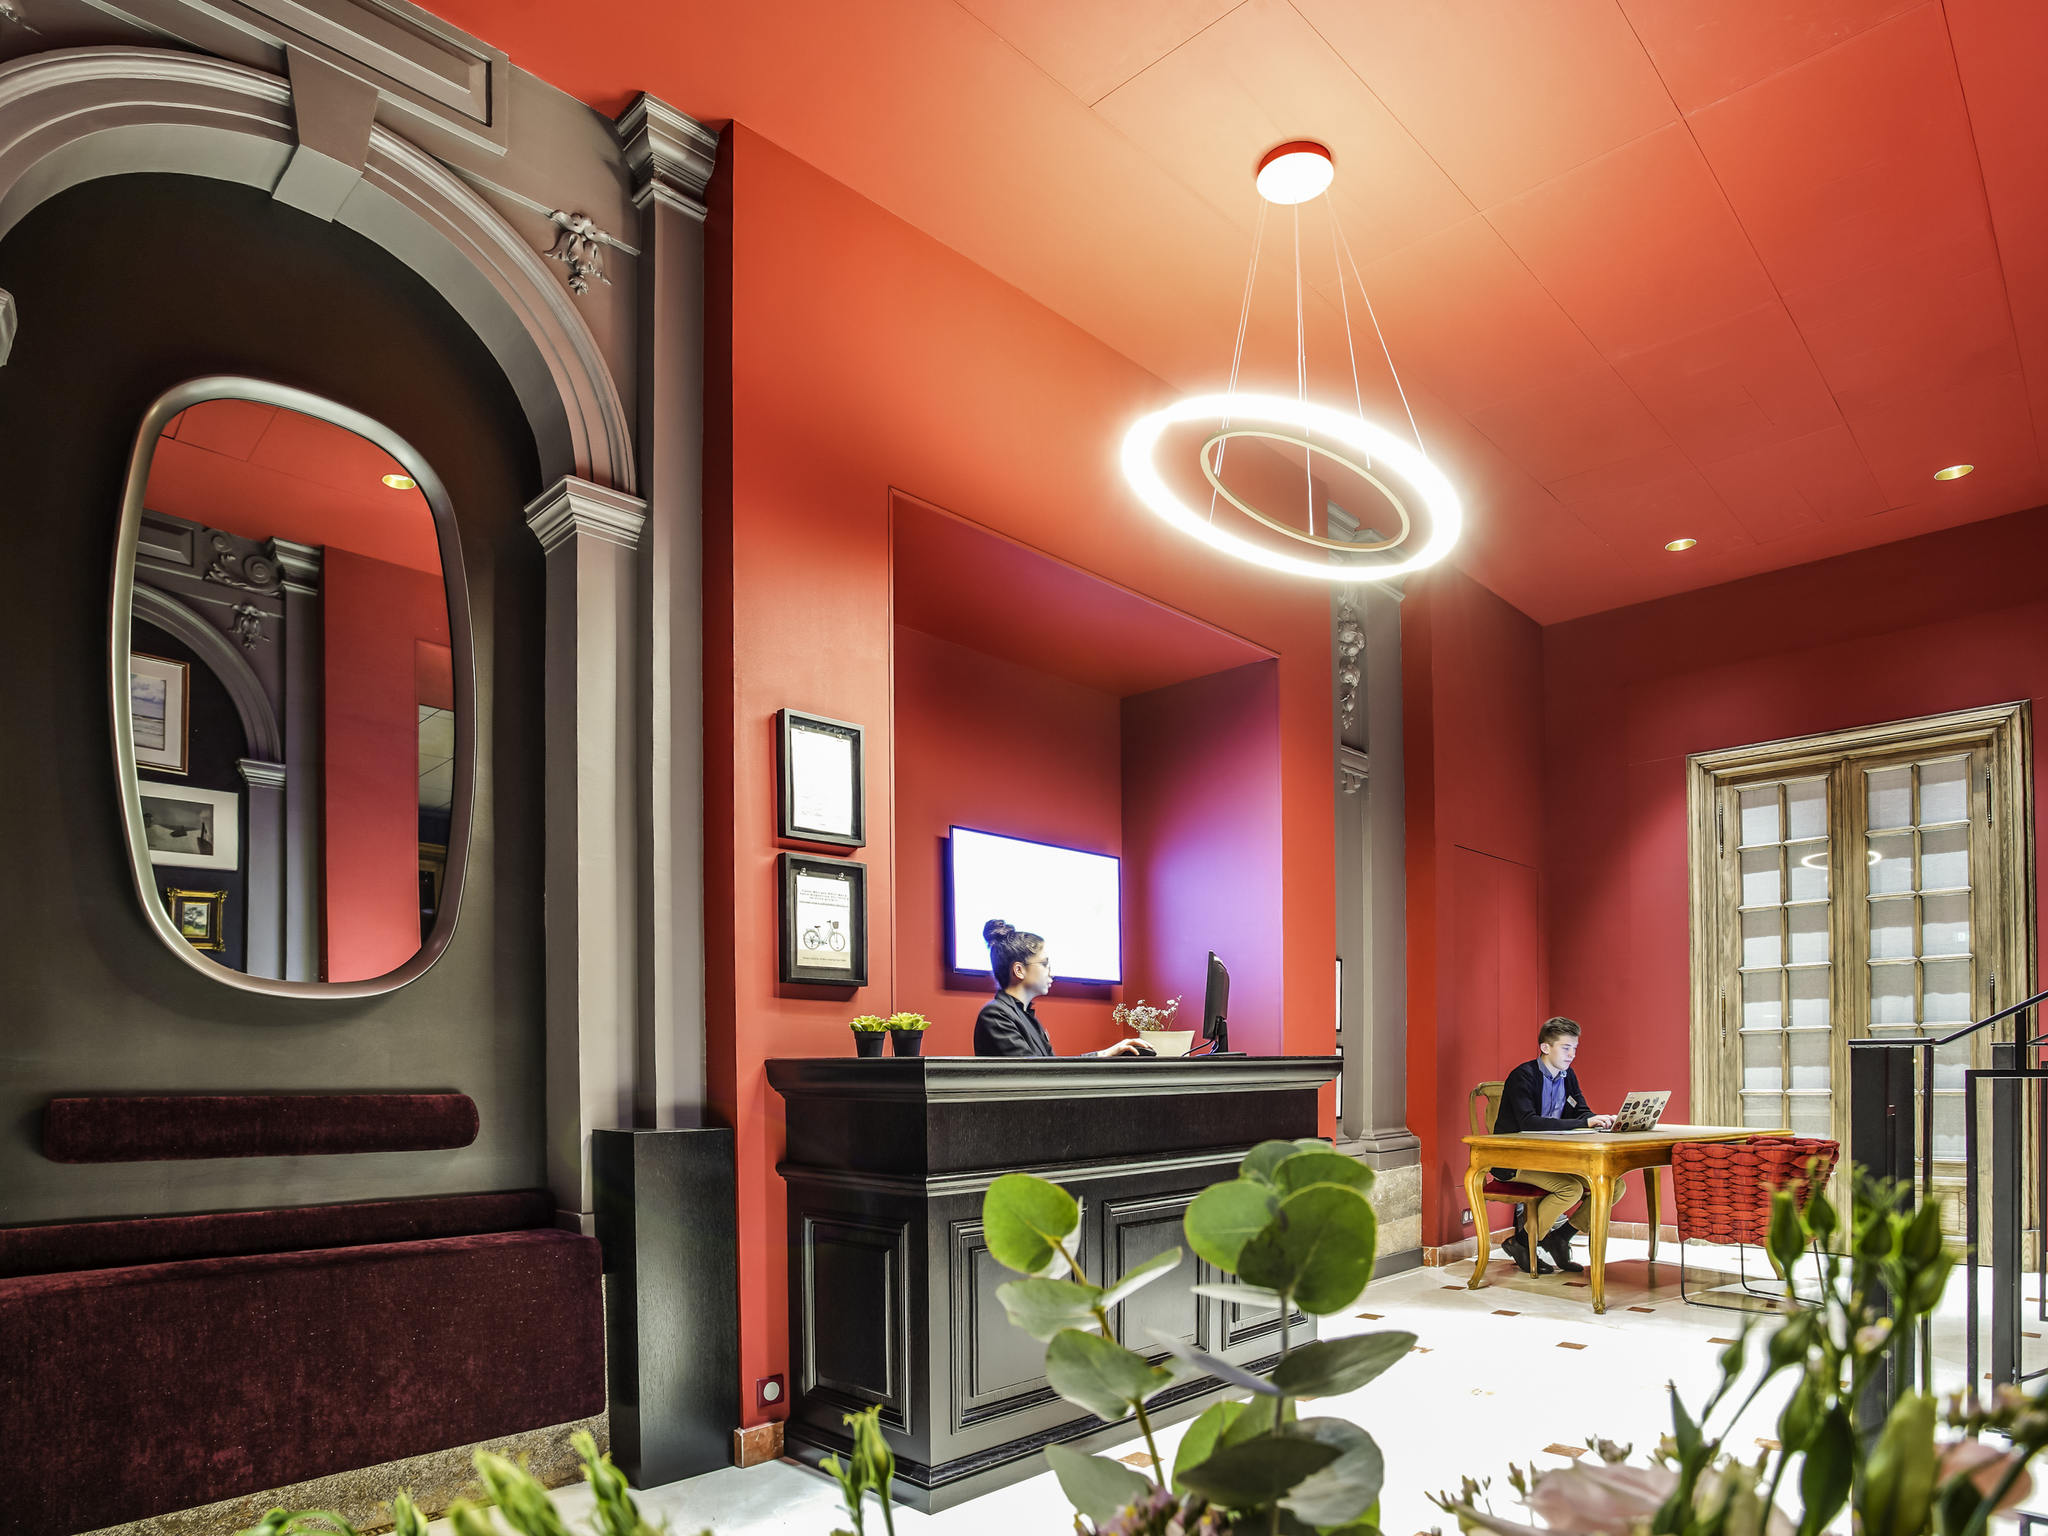 Interiors rennes clment guillaume hotel mercure rennes for Hotel design rennes